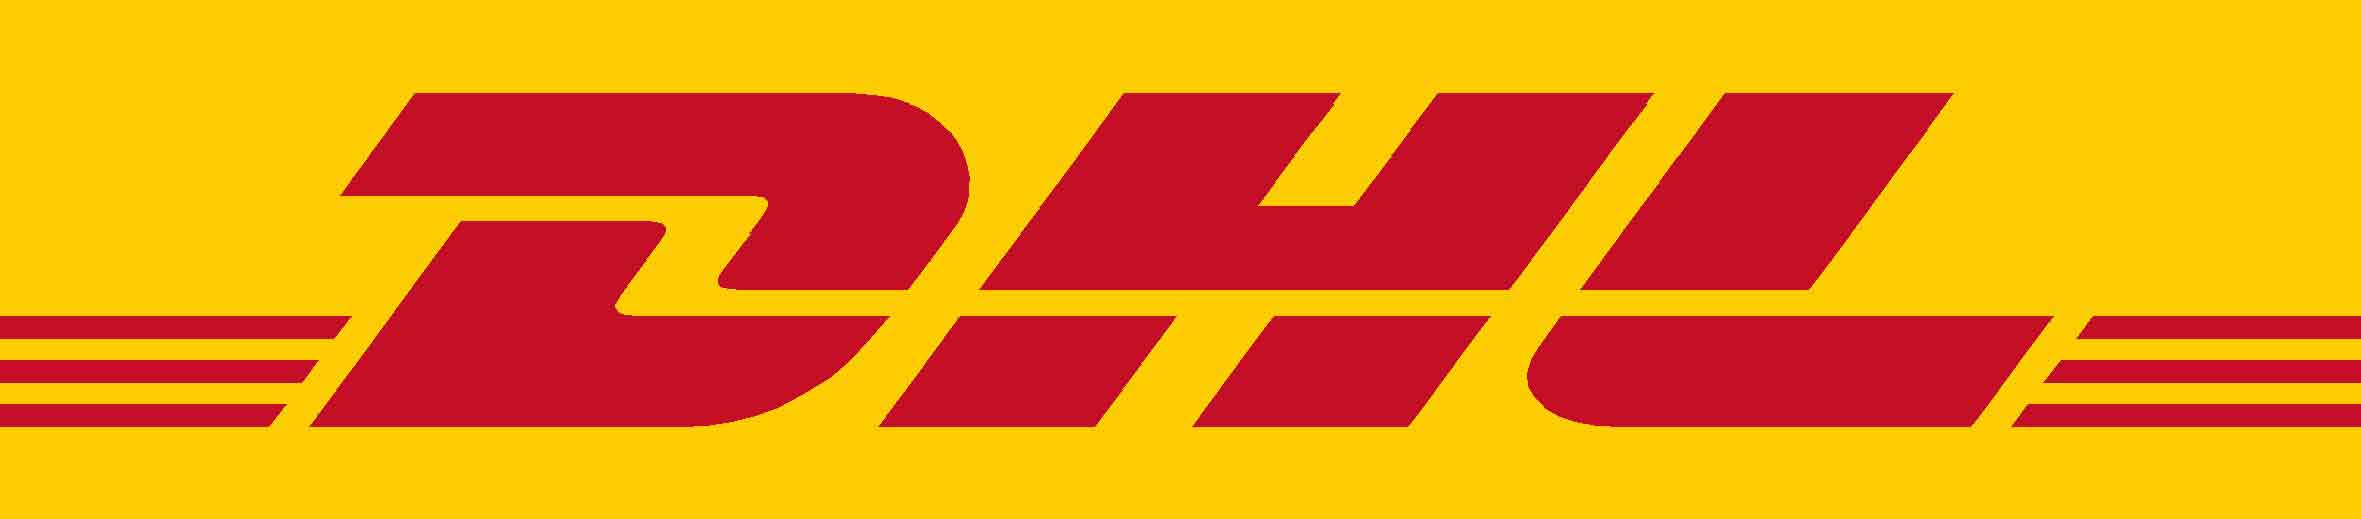 mediafiles/s360/paymentimages/dhl-icon-15.jpg